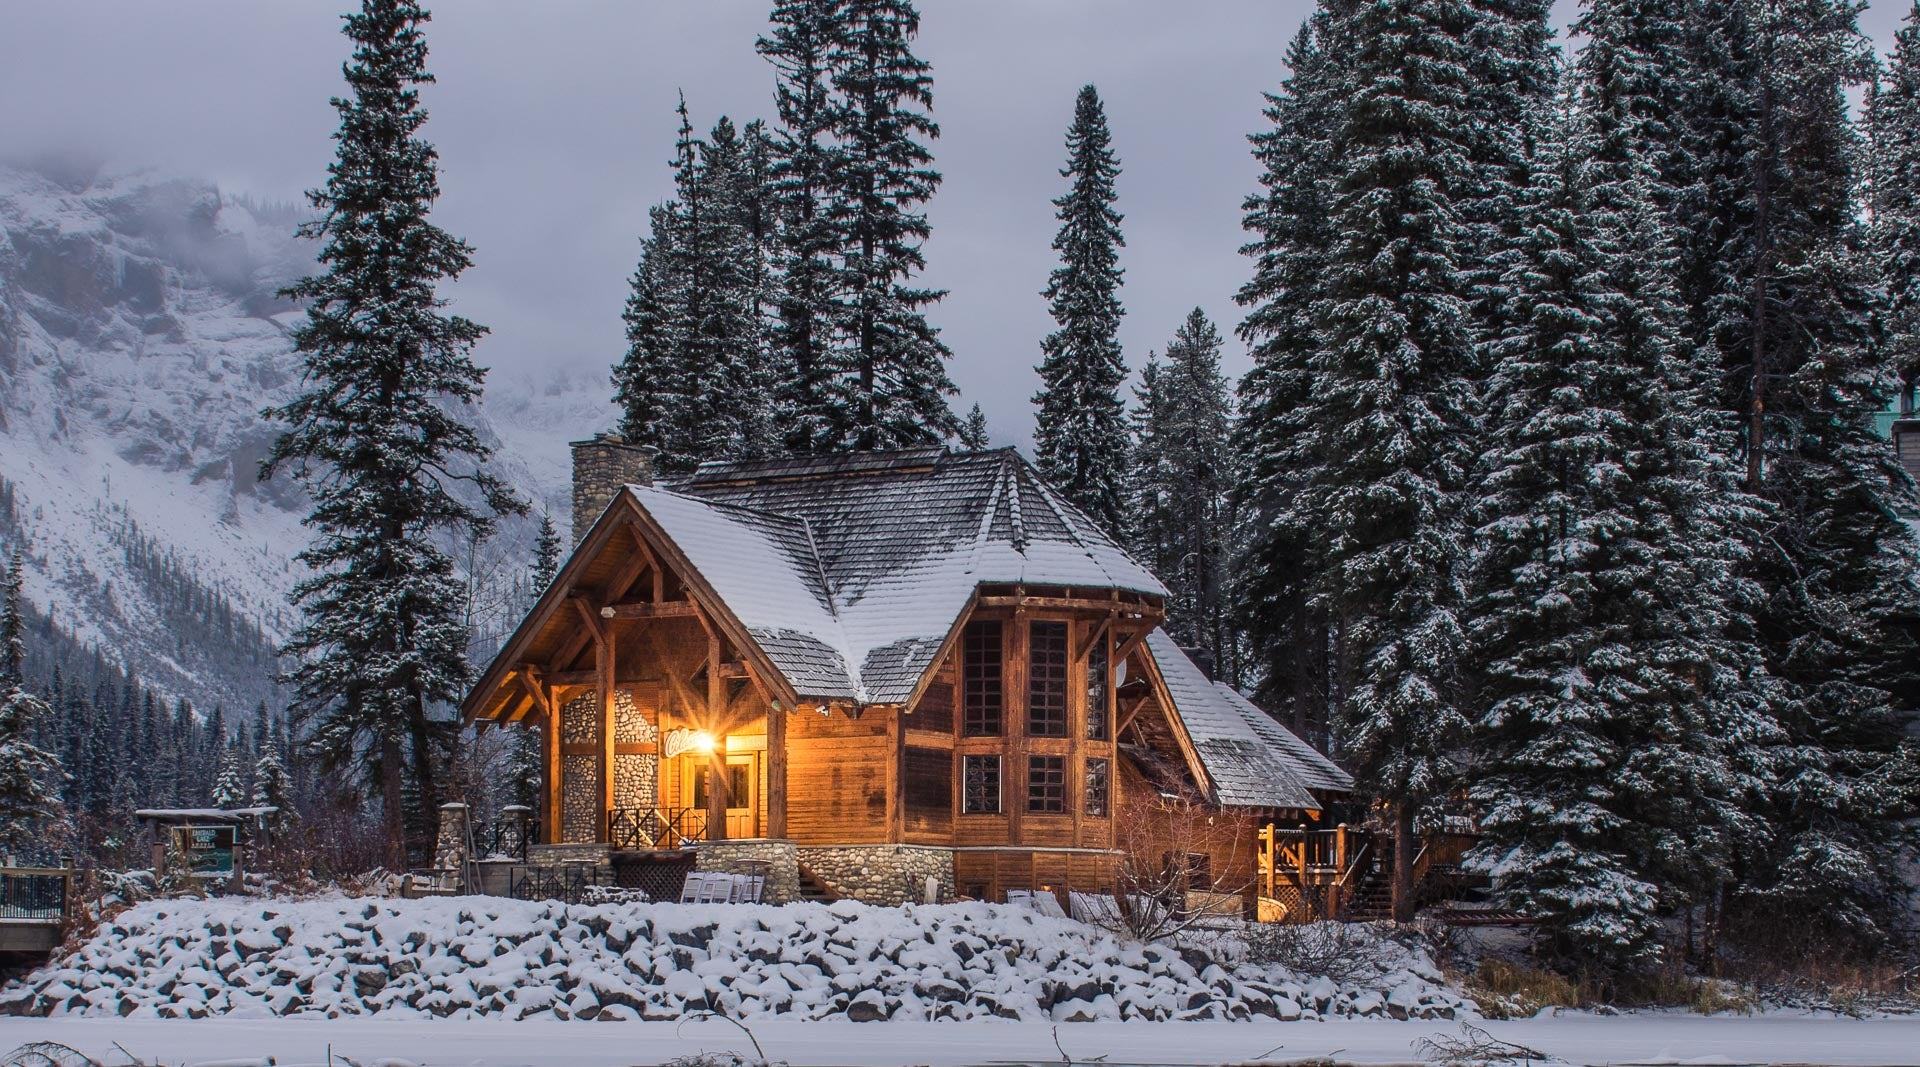 Wooden House Surrounded by Trees and Snowy Mountains in Winter